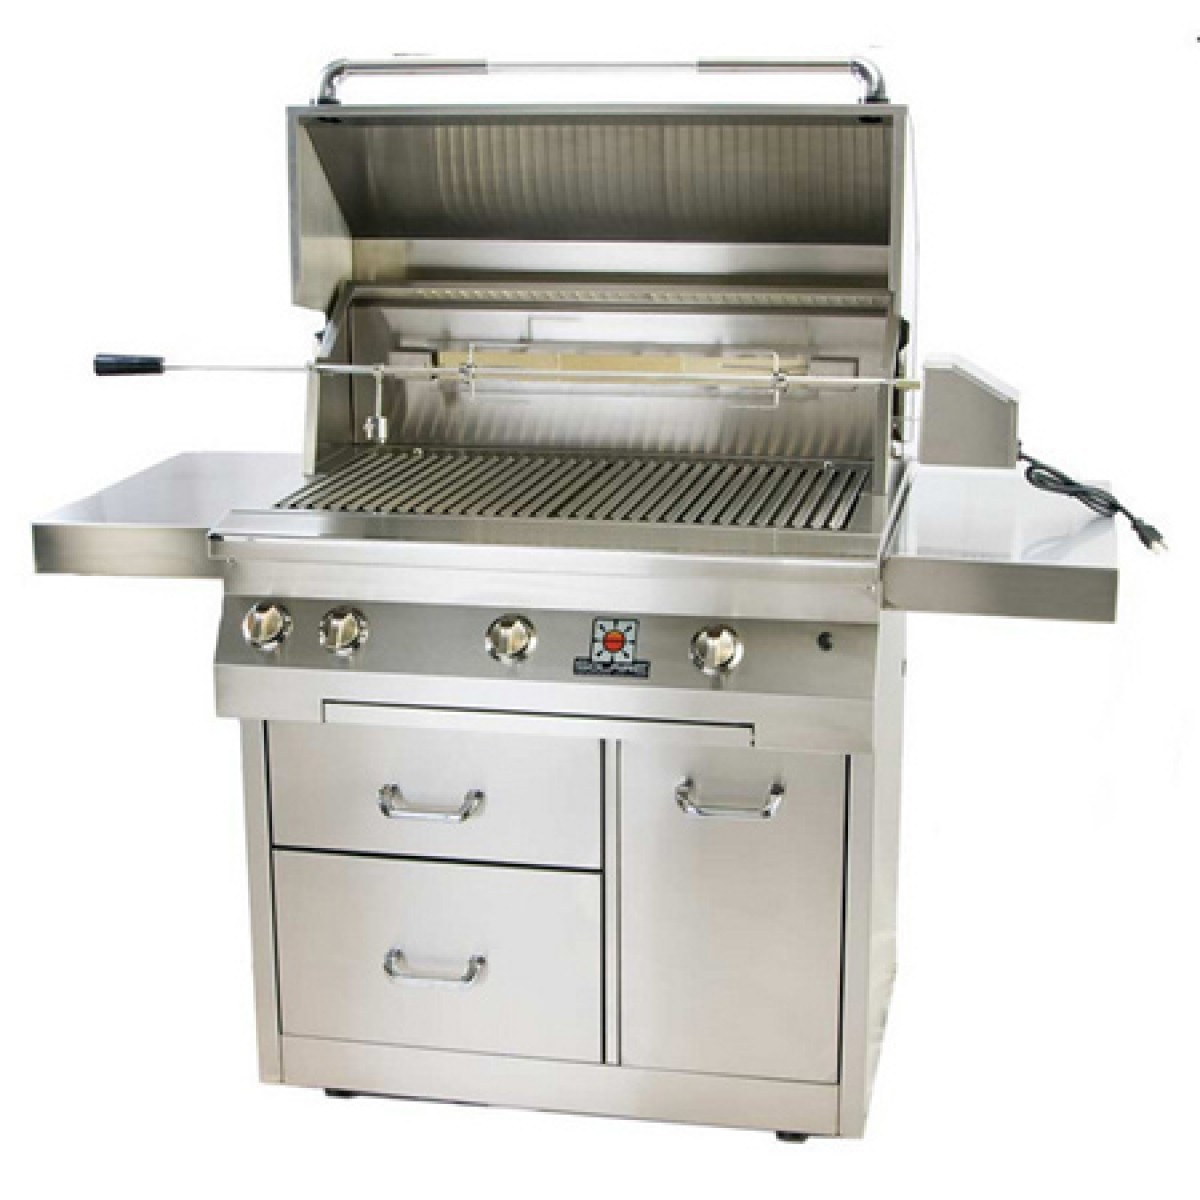 heli parts direct with Solaire Sol Agbq 30cx Lp 30 Lp Convection Premium Cart Grill on Solaire Sol Agbq 27gir Ped Ng 27 Ng Infrared Angular Pedestal Grill as well 282381338180 further Xk Innovations Xk380 Gps Module together with Lily Land in addition Devil 450 Pro V2 Fbl Black Kit Alzrc Copy.